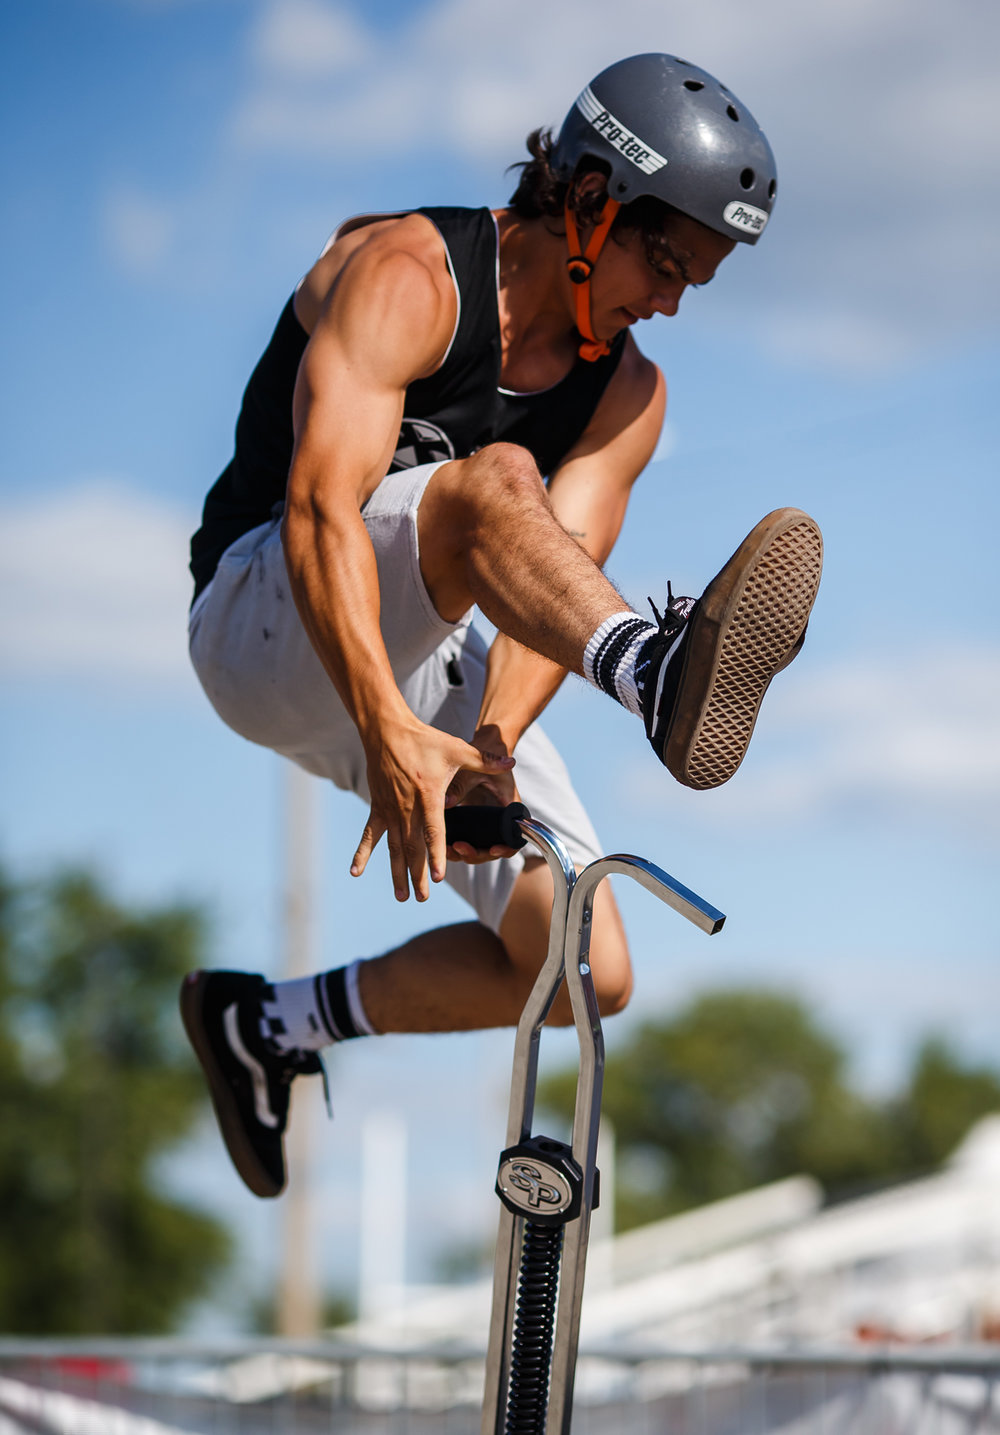 Nic Patino, 19, of New Hope, Penn., moves his leg over a pogo stick while switching hands in mid-air as he performs Xpogo Stunt Team in the Thrillville area near Gate 2 at the Illinois State Fairgrounds, Saturday, Aug. 12, 2017, in Springfield, Ill. [Justin L. Fowler/The State Journal-Register]